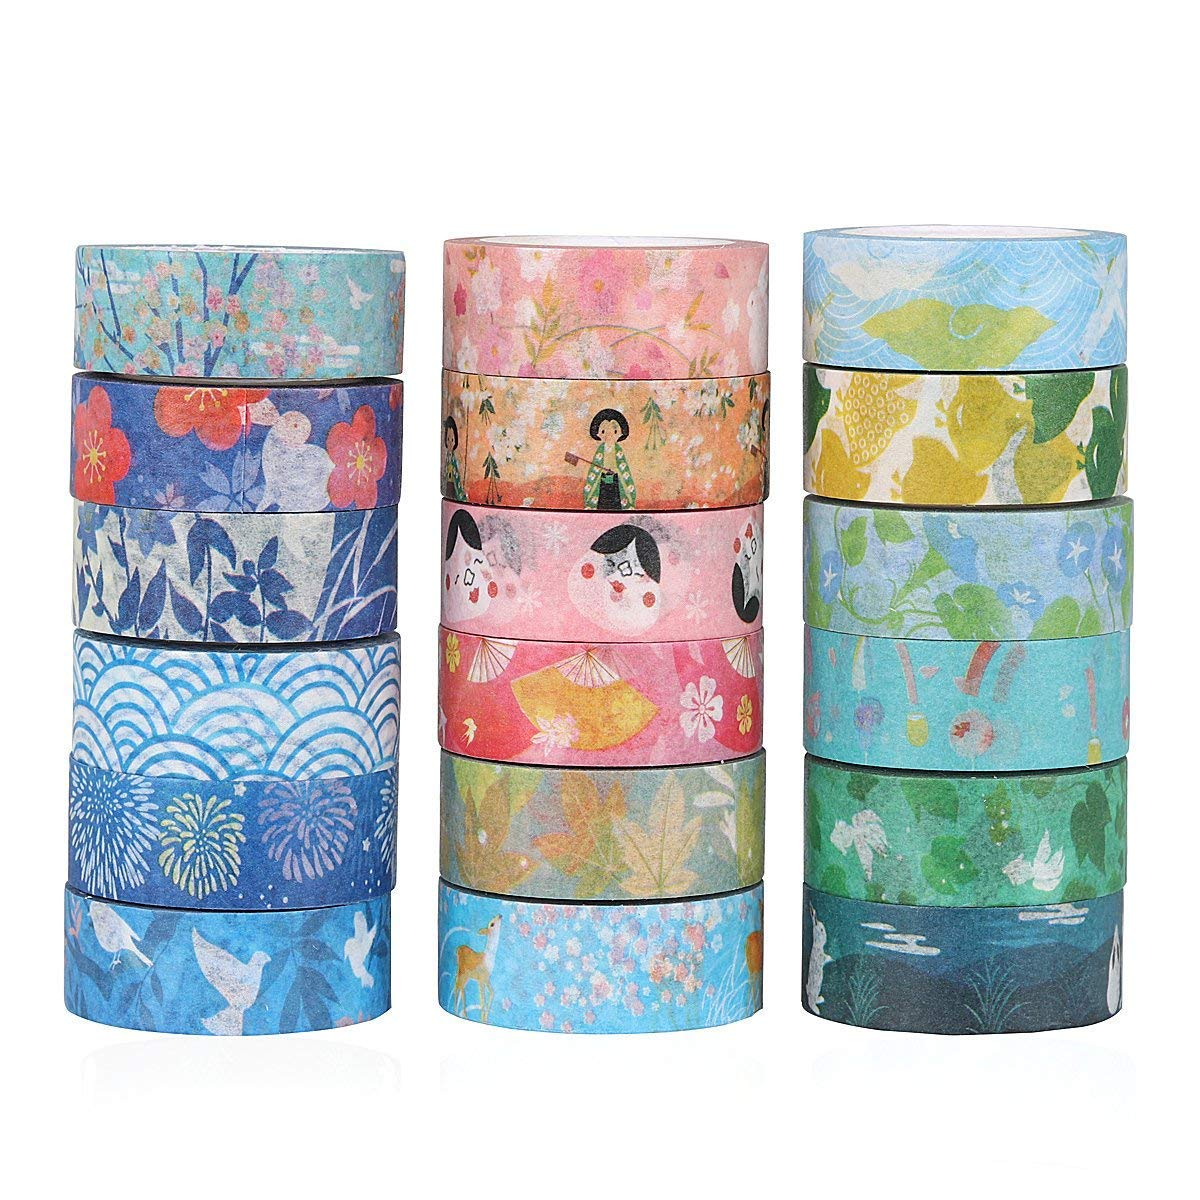 Molshine Set of 7 Japanese Washi Masking Tape, Dreamlike Series,Sticky Paper Tape for DIY, Decorative Craft, Gift Wrapping, Scrapbook (15mm x 8m, 0.6inch x 8.7 Yard)